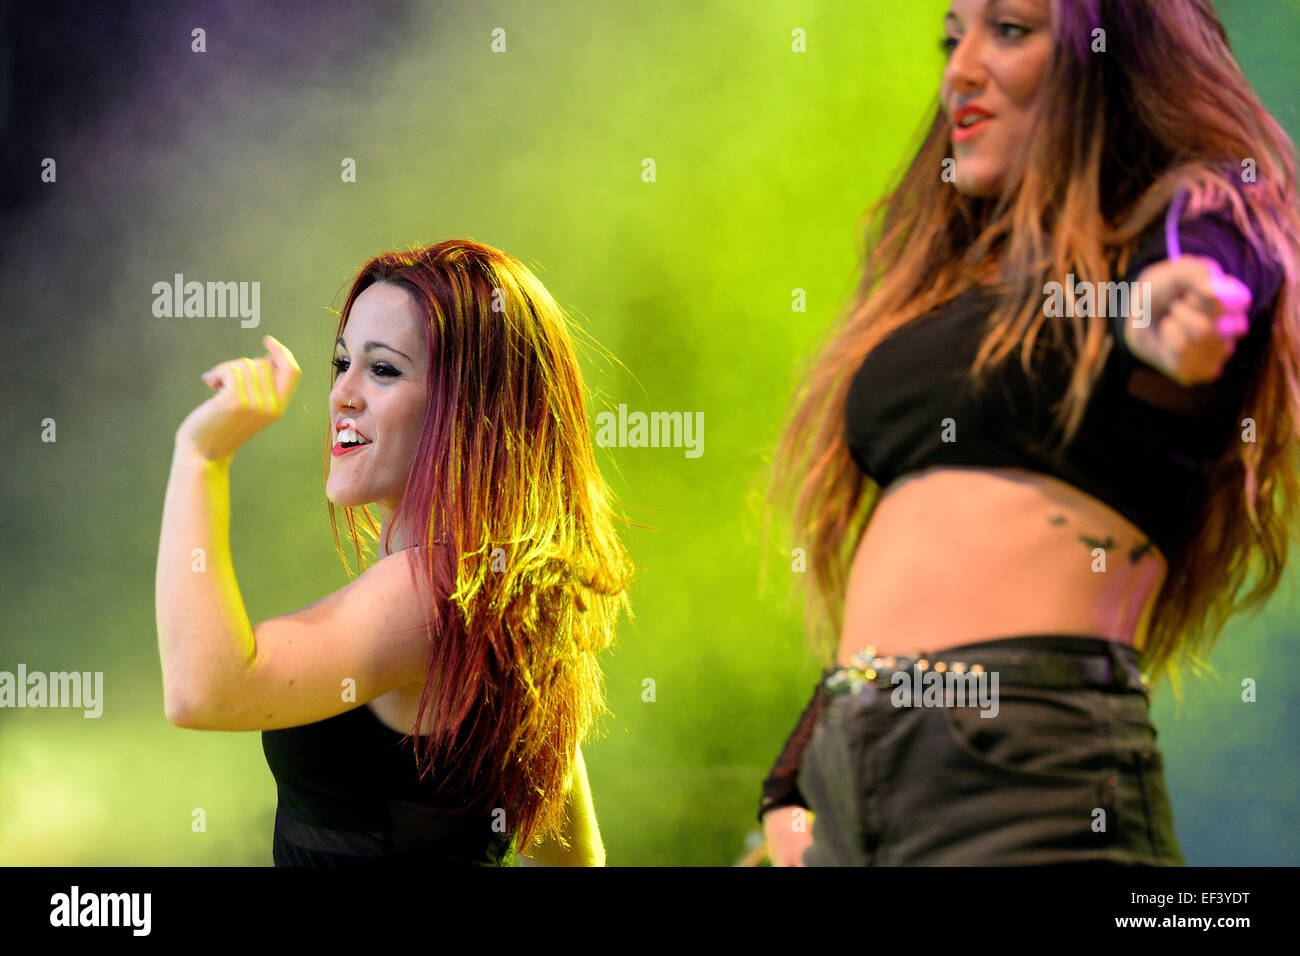 BARCELONA - MAY 23: Woman dancing a choreography at the Primavera Pop Festival of Badalona on May 18, 2014 in Barcelona, - Stock Image